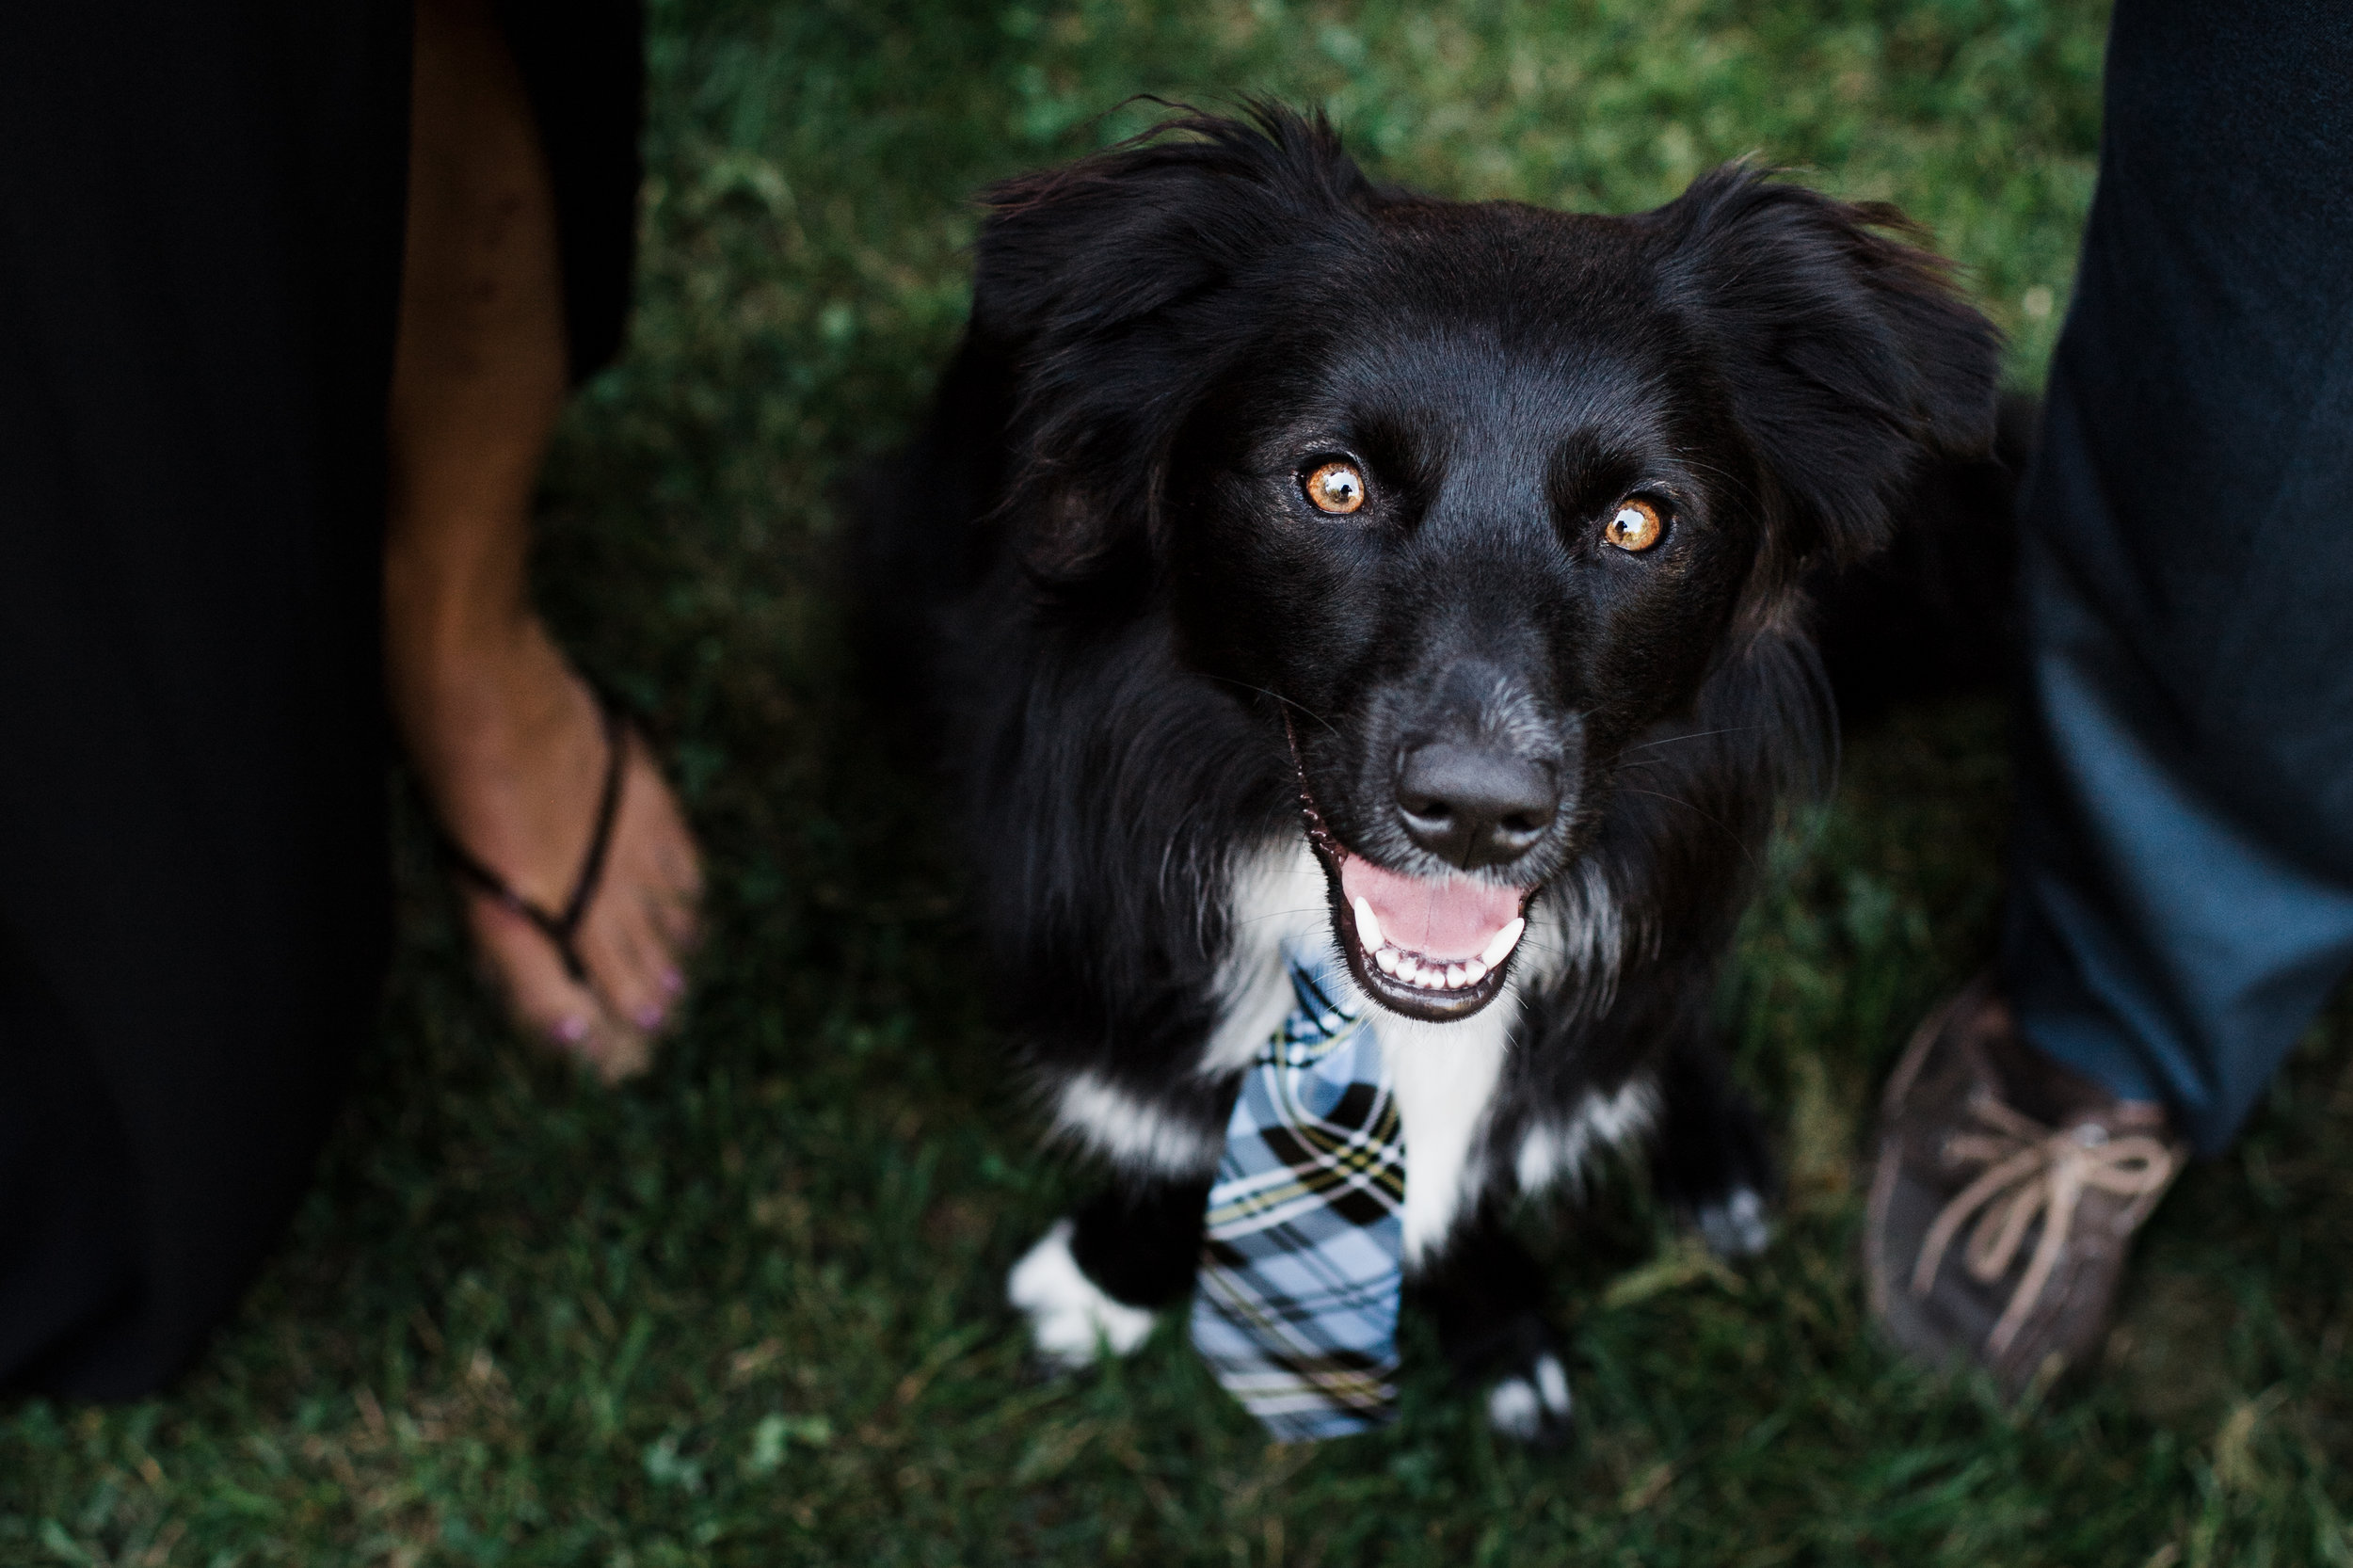 Back dog with bright brown eyes smiles while wearing a blue plaid tie.